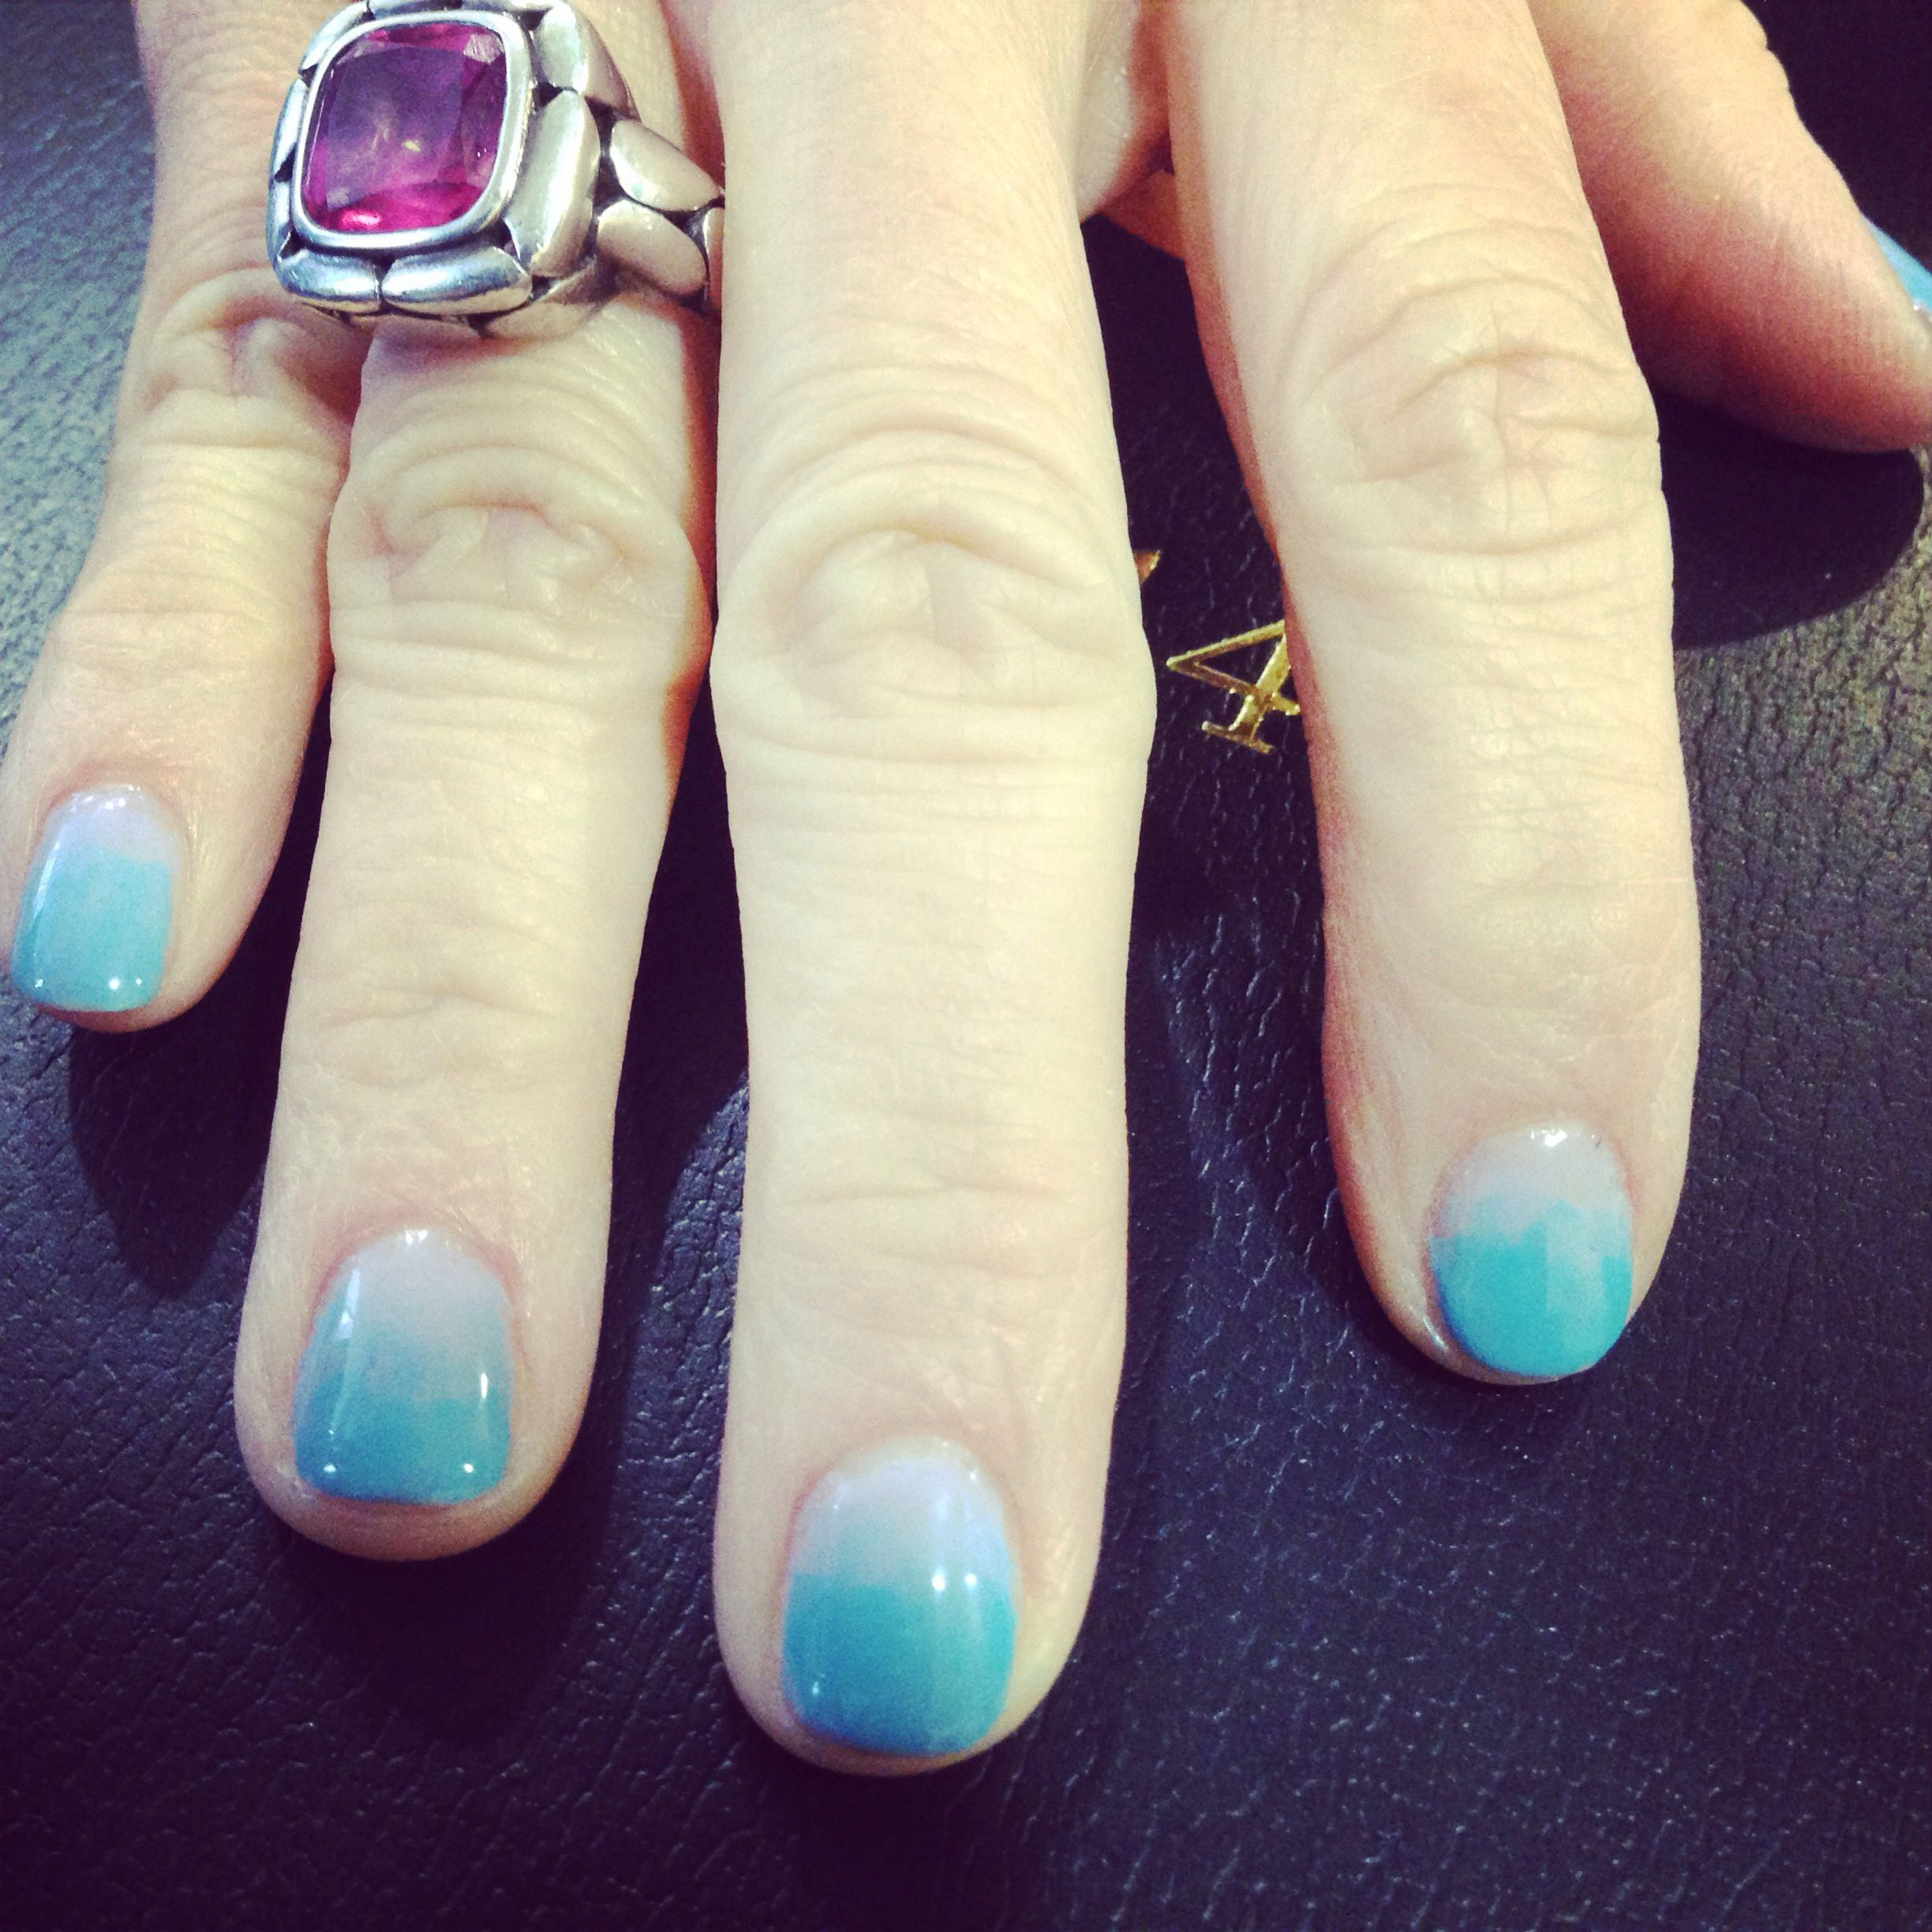 Getting ready for spring with new nail color, done by Pat Lai. How ...